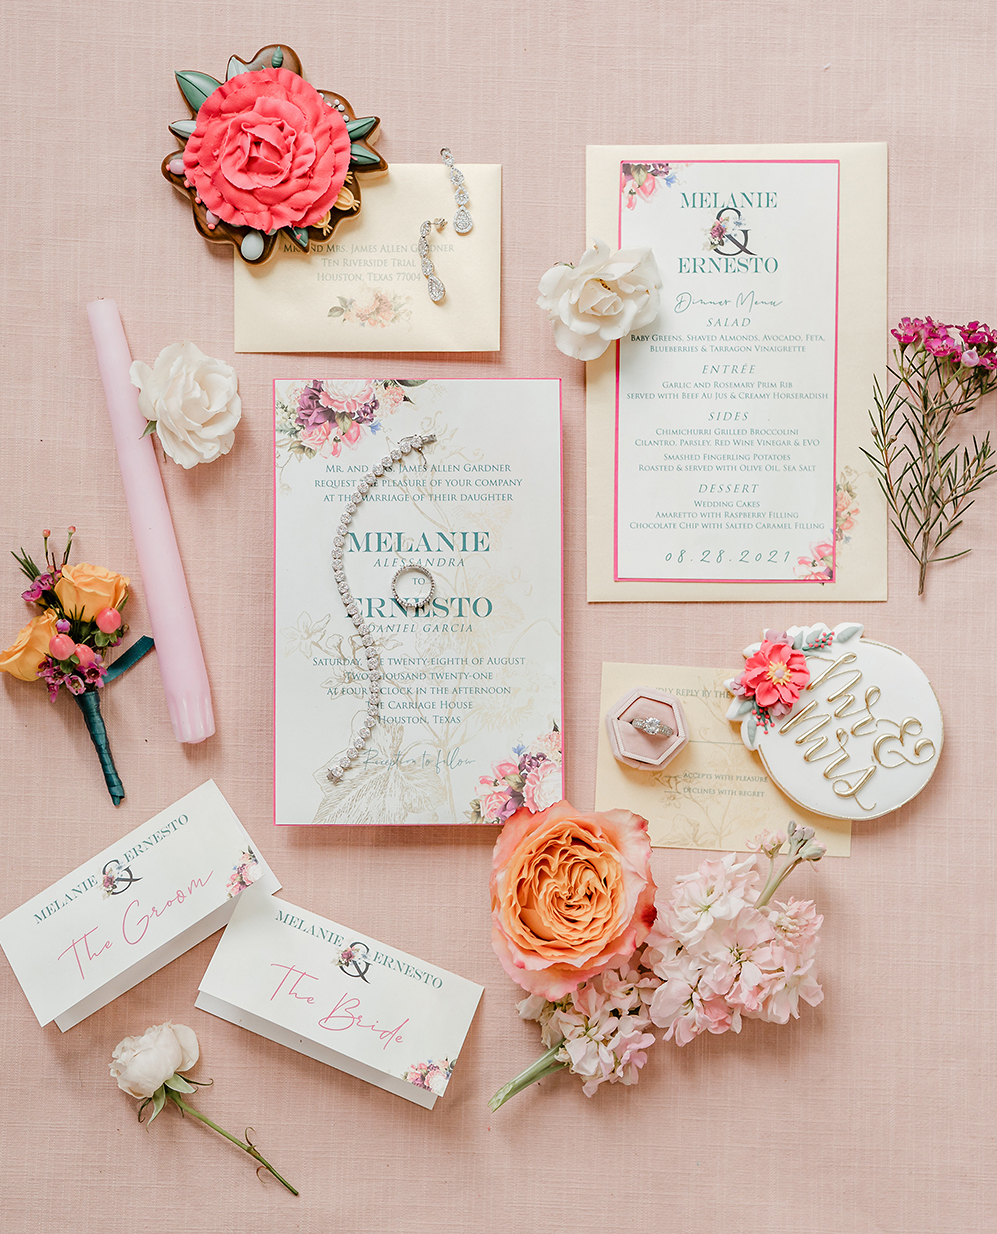 White invitations with teal lettering and floral designs on them with hydrangea stems, orange roses, and white carnations around them.